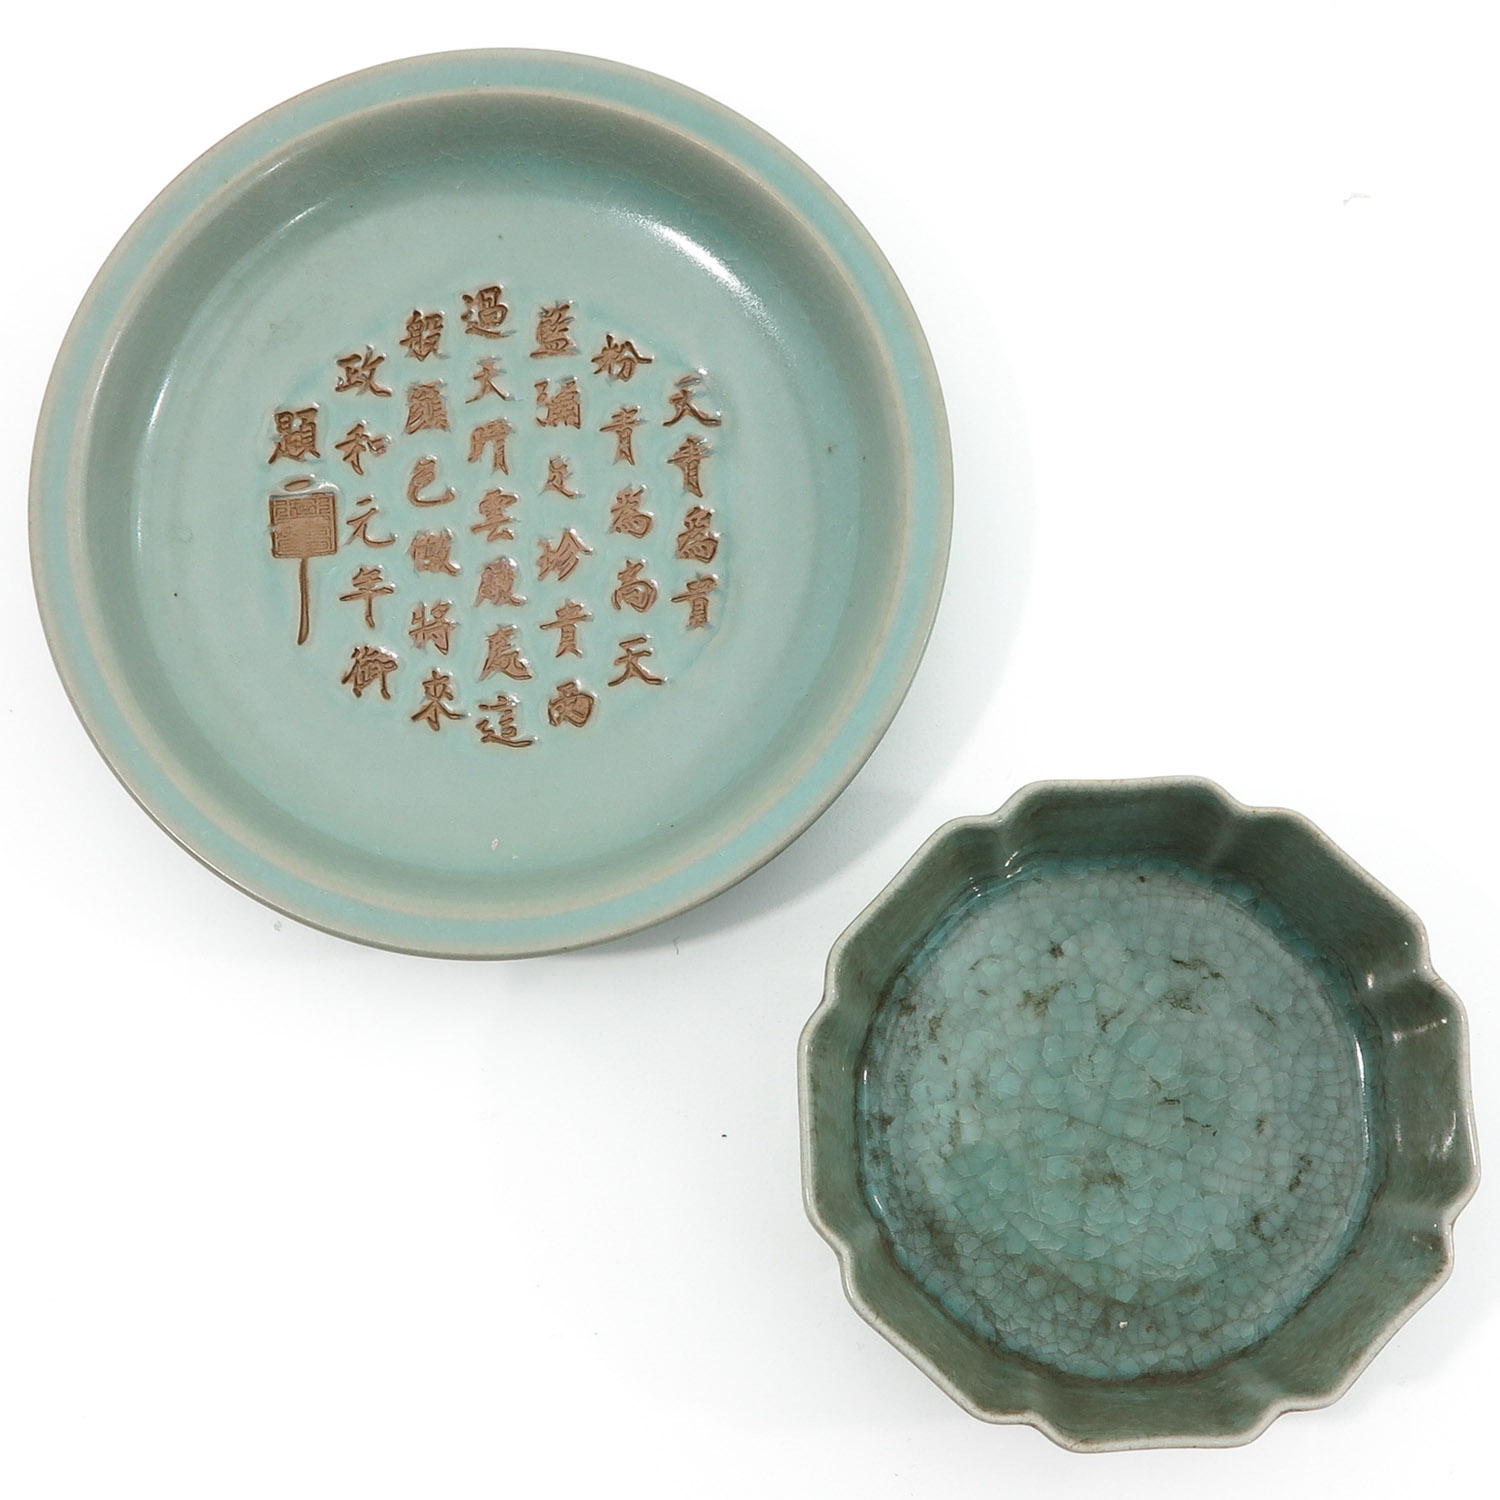 A Celadon Plate and Dish - Image 5 of 10